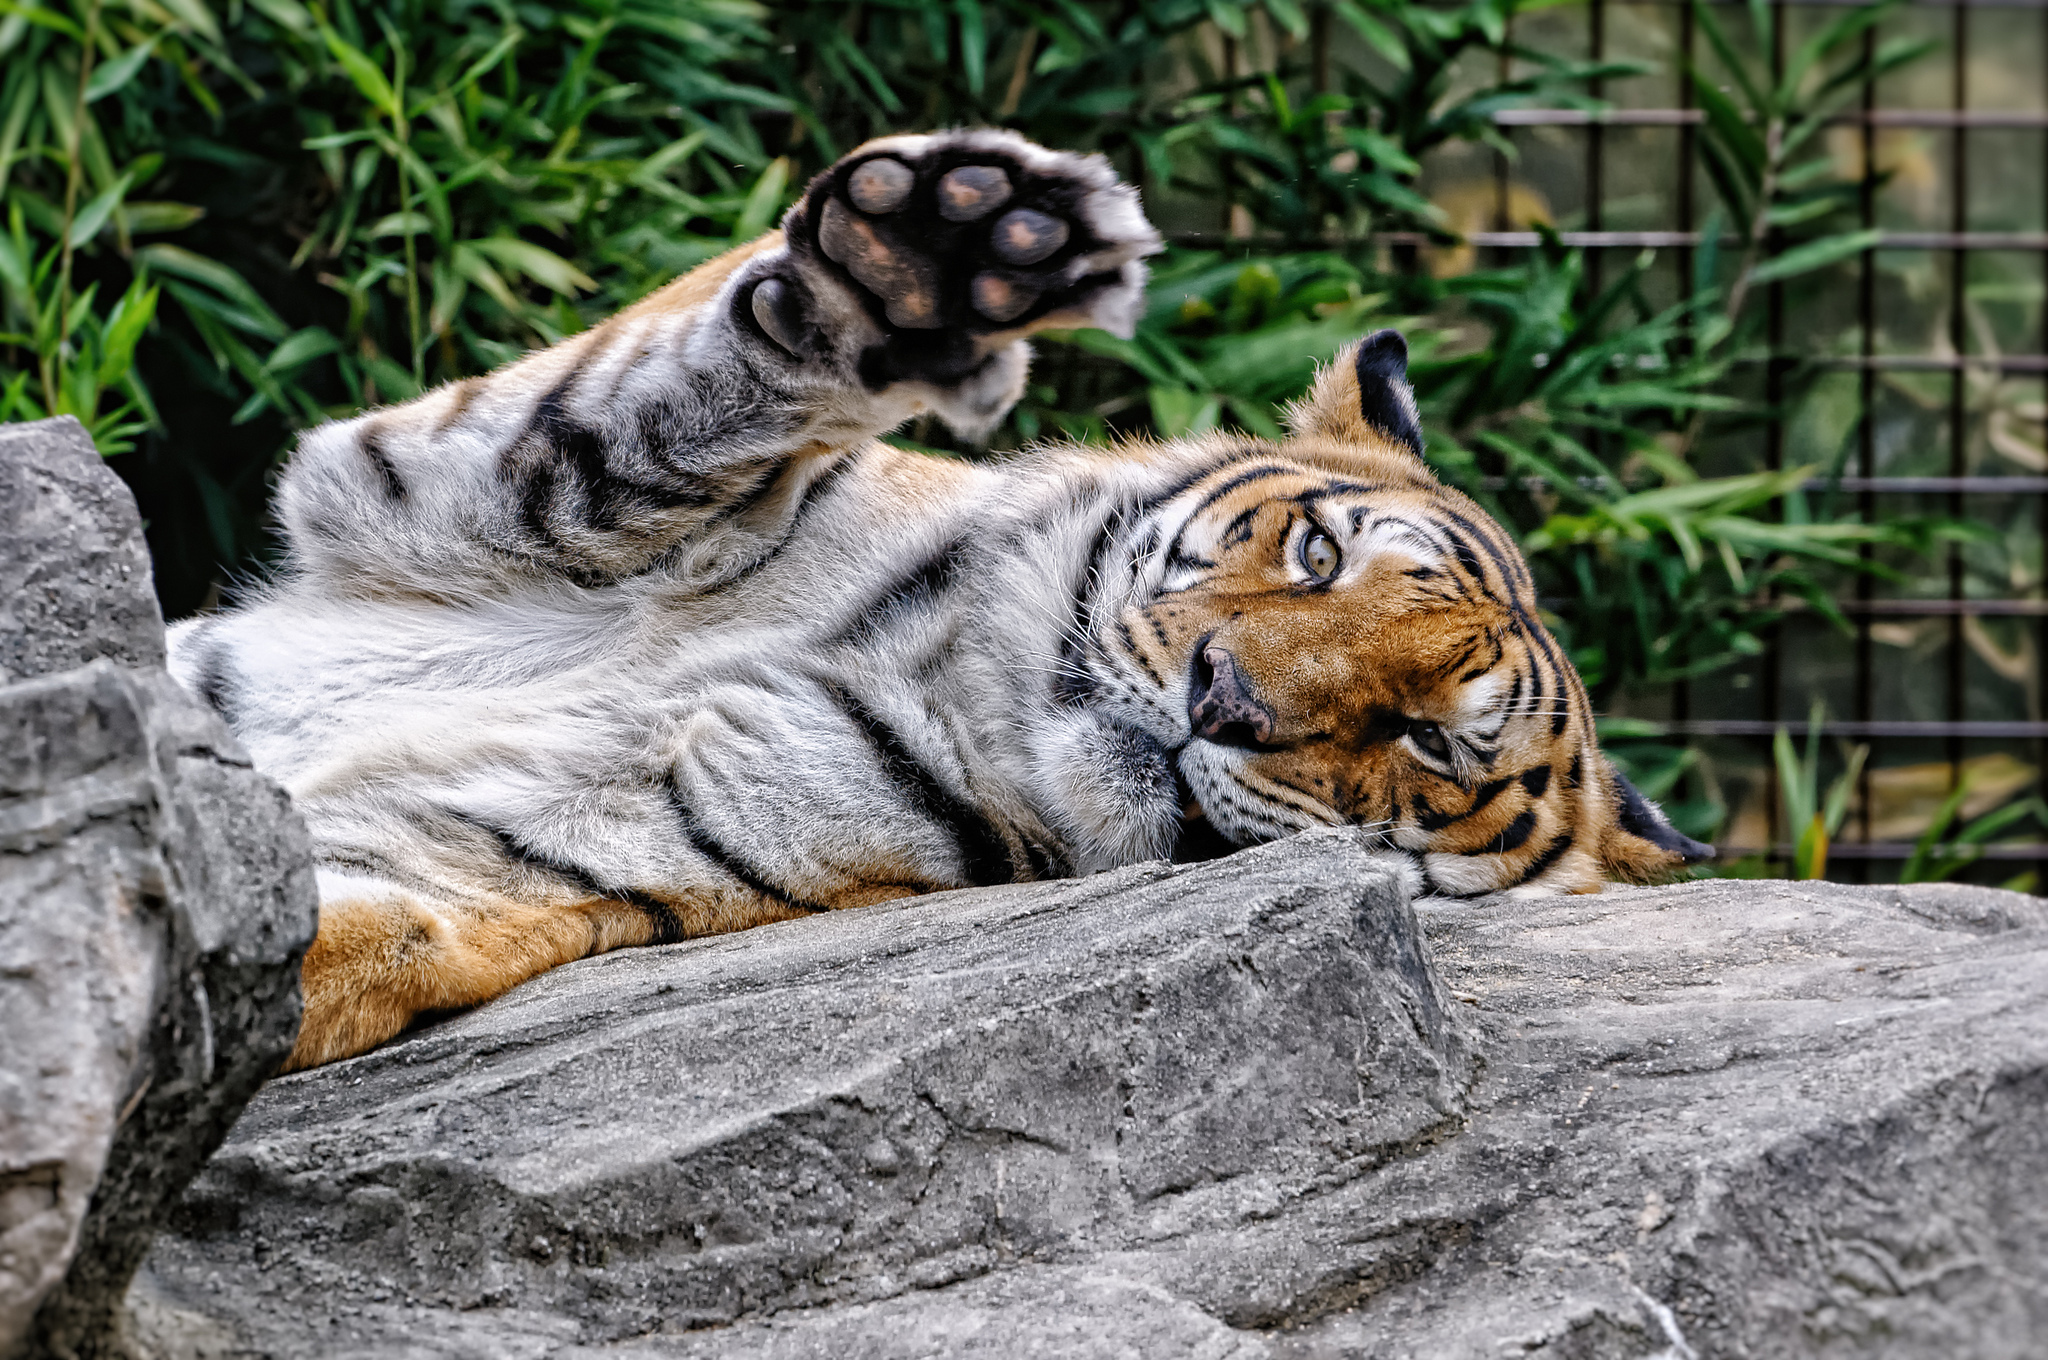 93919 download wallpaper Animals, Amur Tiger, Muzzle, Predator, Paw screensavers and pictures for free